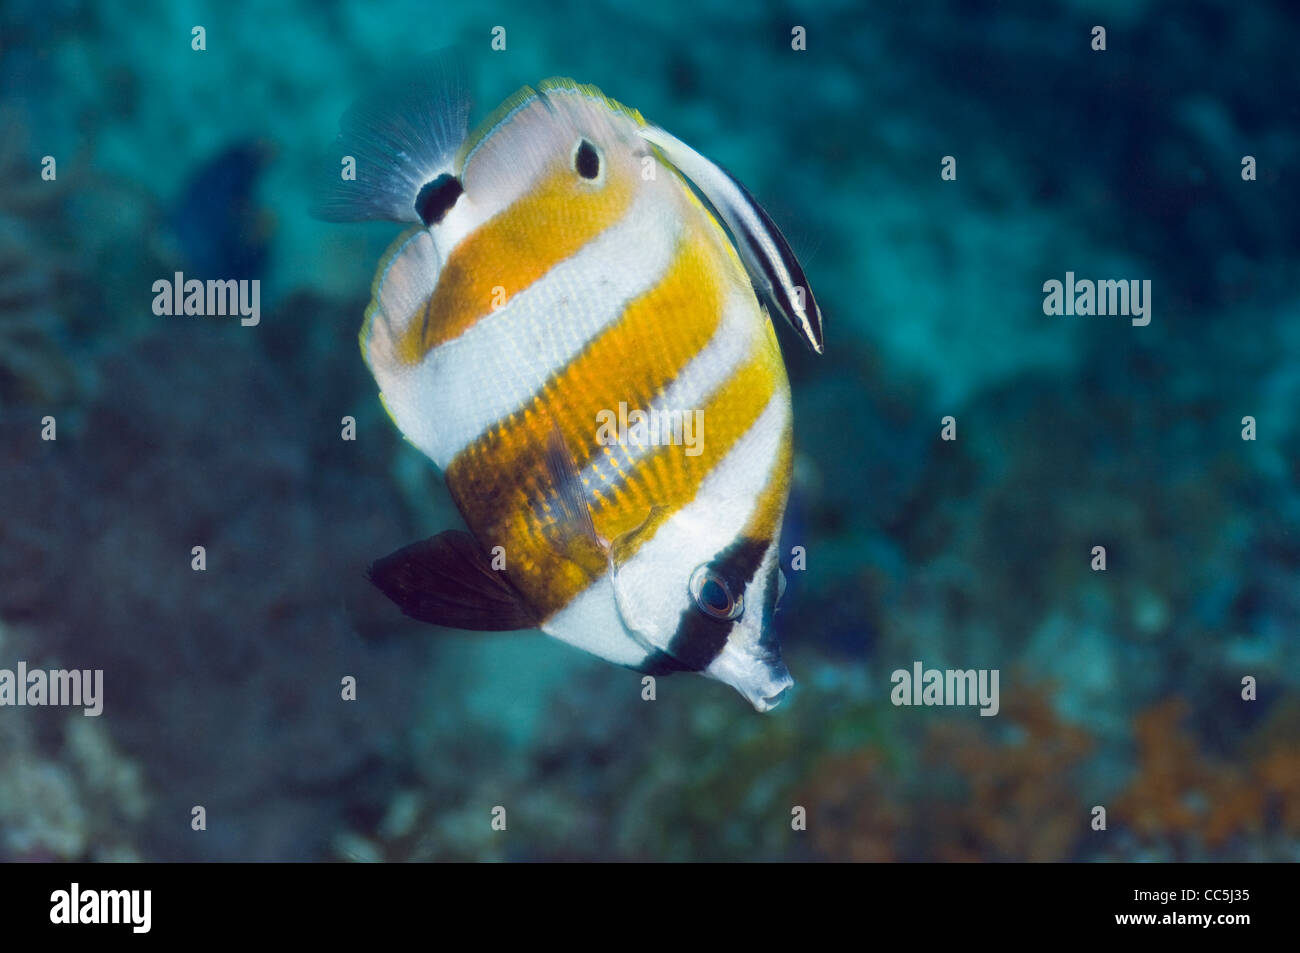 Orange-banded coralfish (Coradion chrysozonus) with a Bicolour cleaner wrasse (Labroides bicolor) - Stock Image